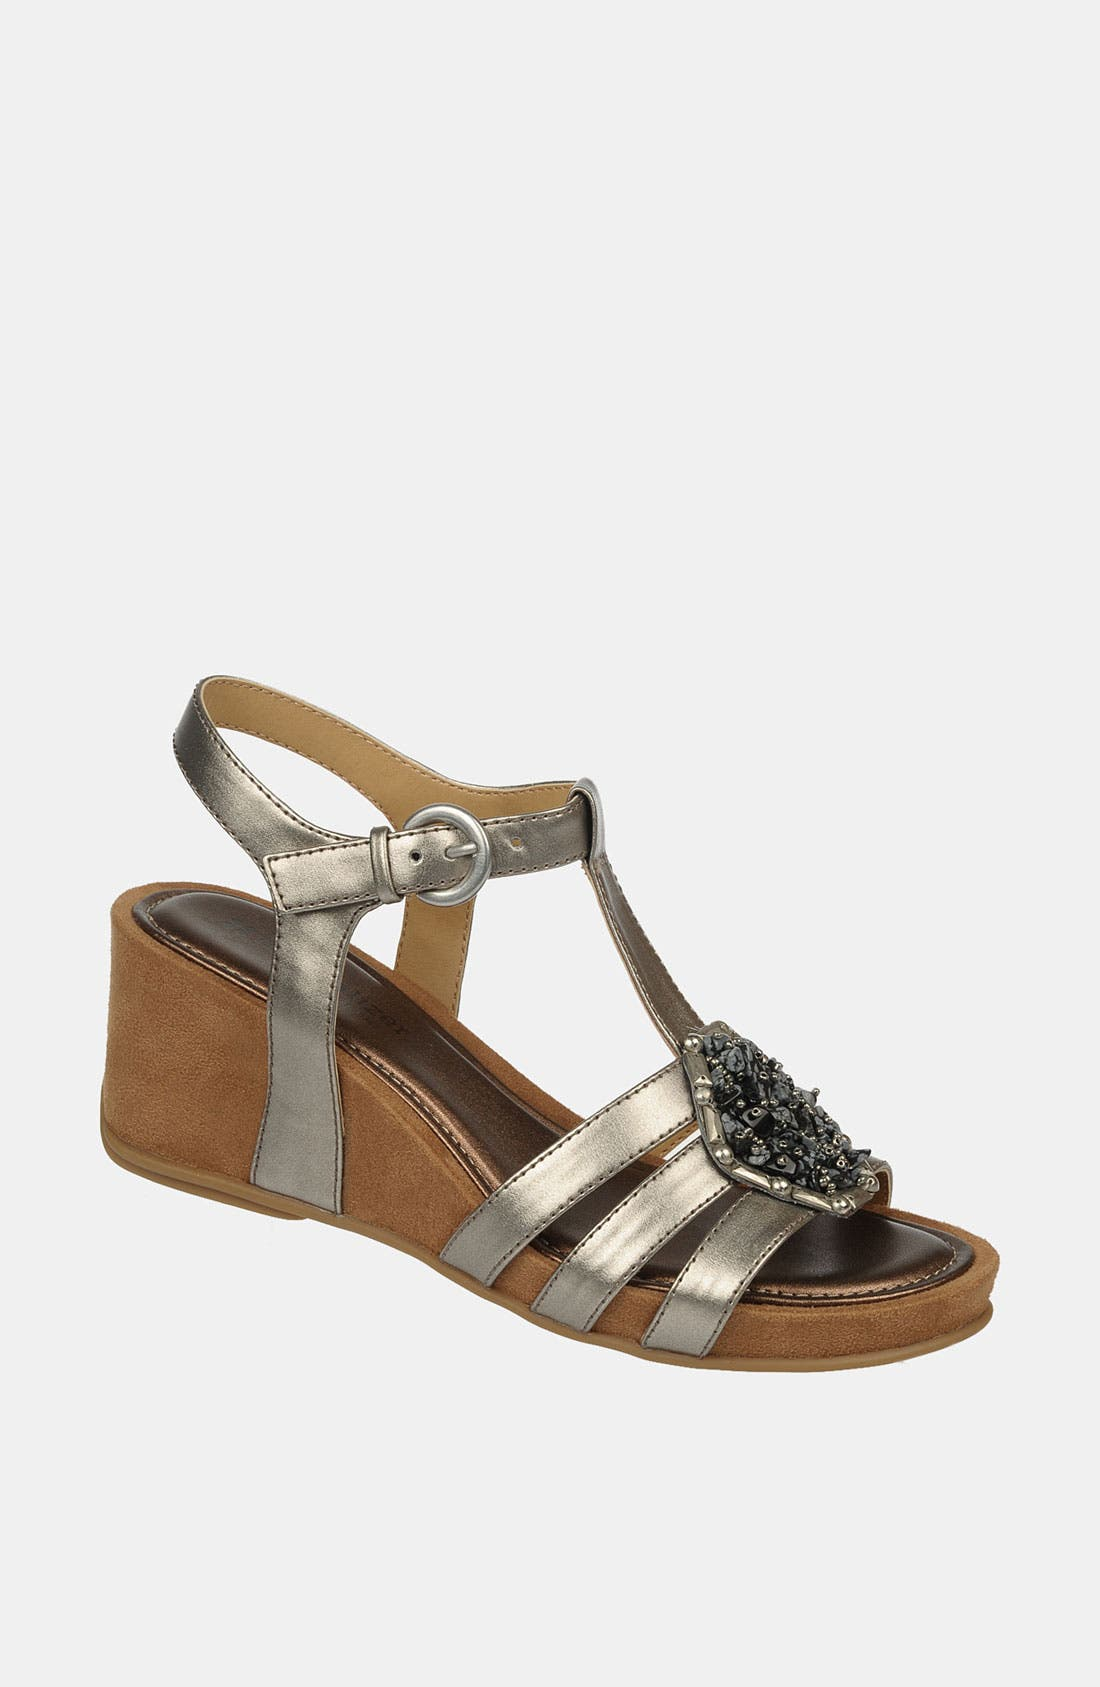 Alternate Image 1 Selected - Naturalizer 'Panama' Sandal